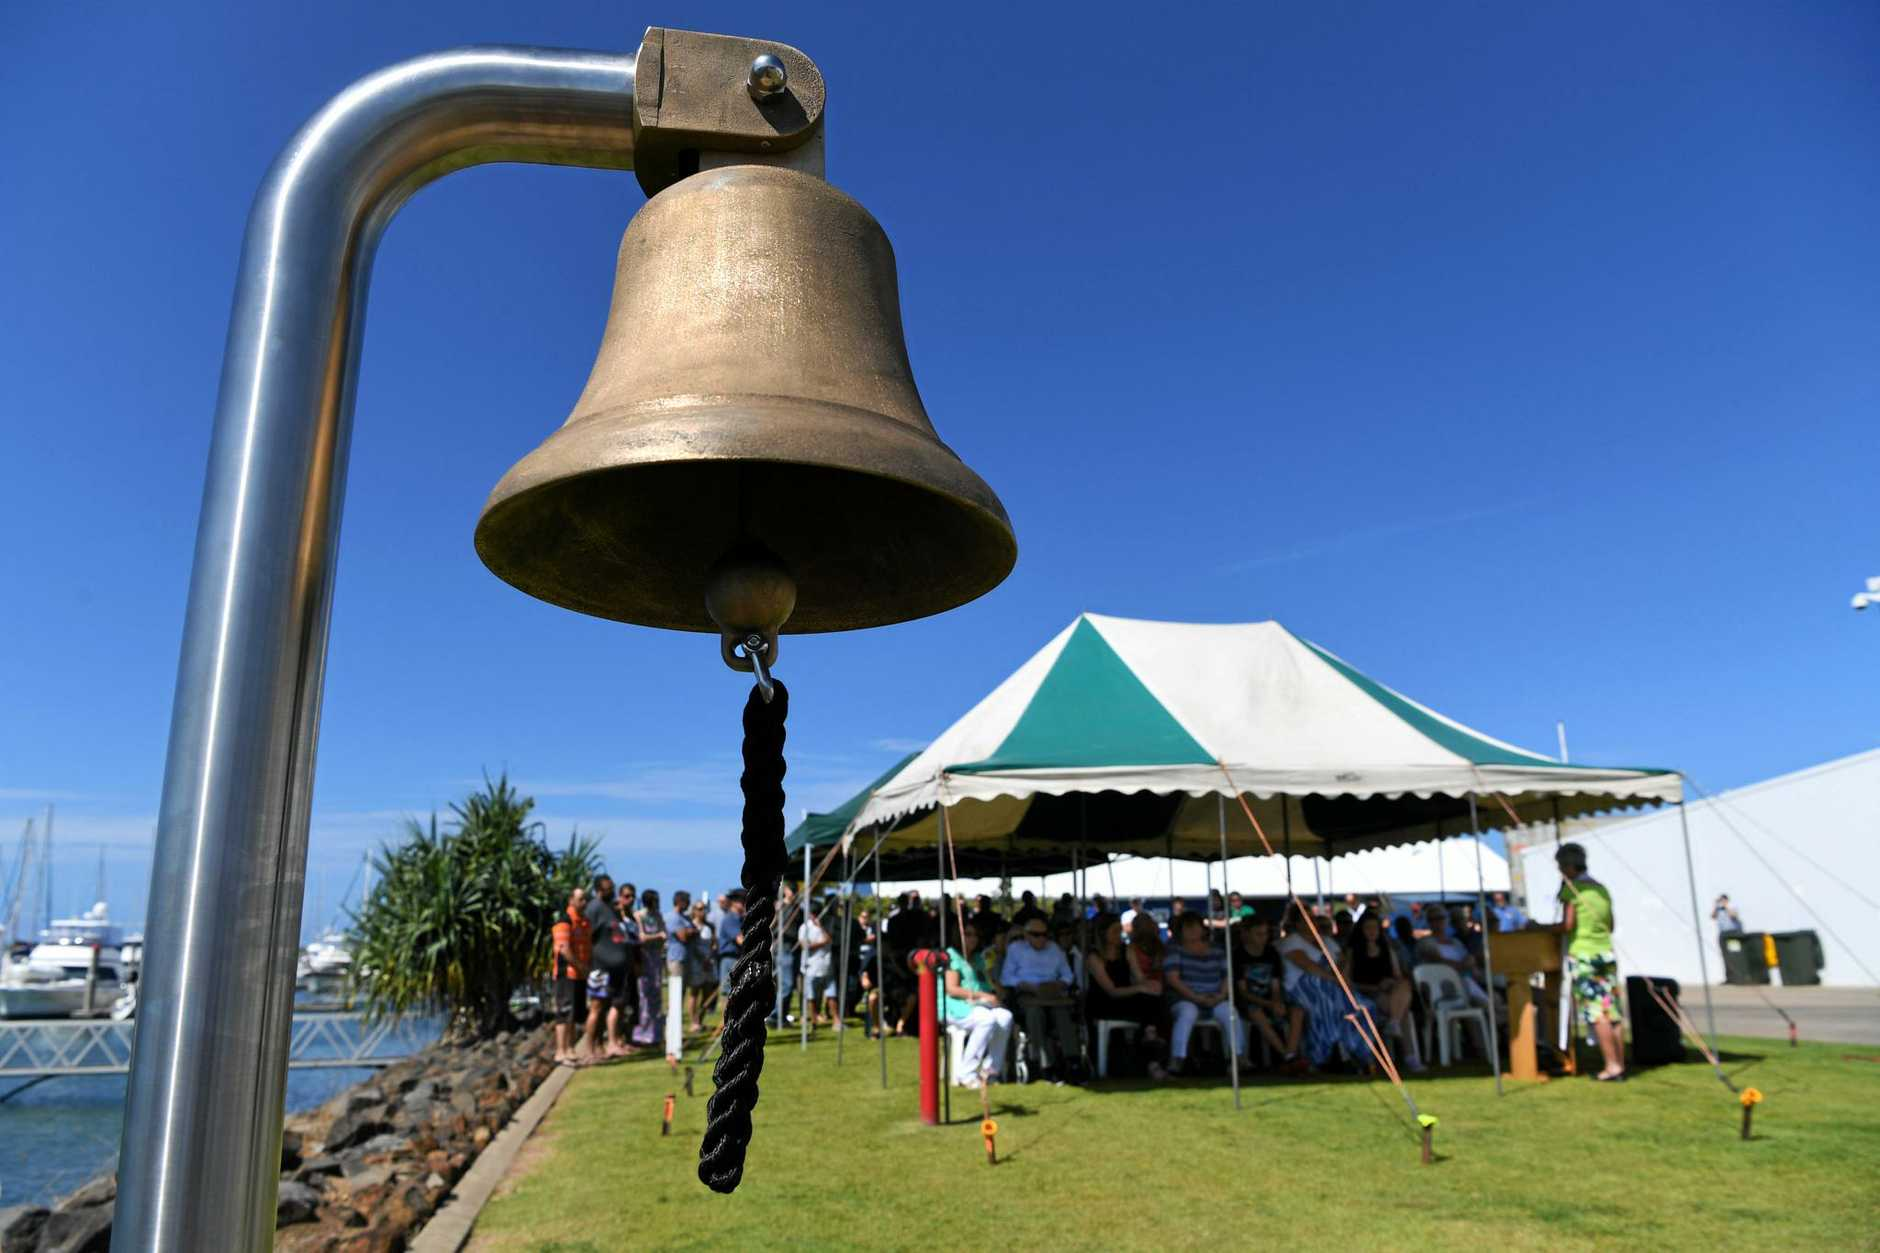 ALWAYS REMEMBERED: The memorial bell for Matthew Roberts and David Chivers who were tragically lost at sea on 4 April 2016.